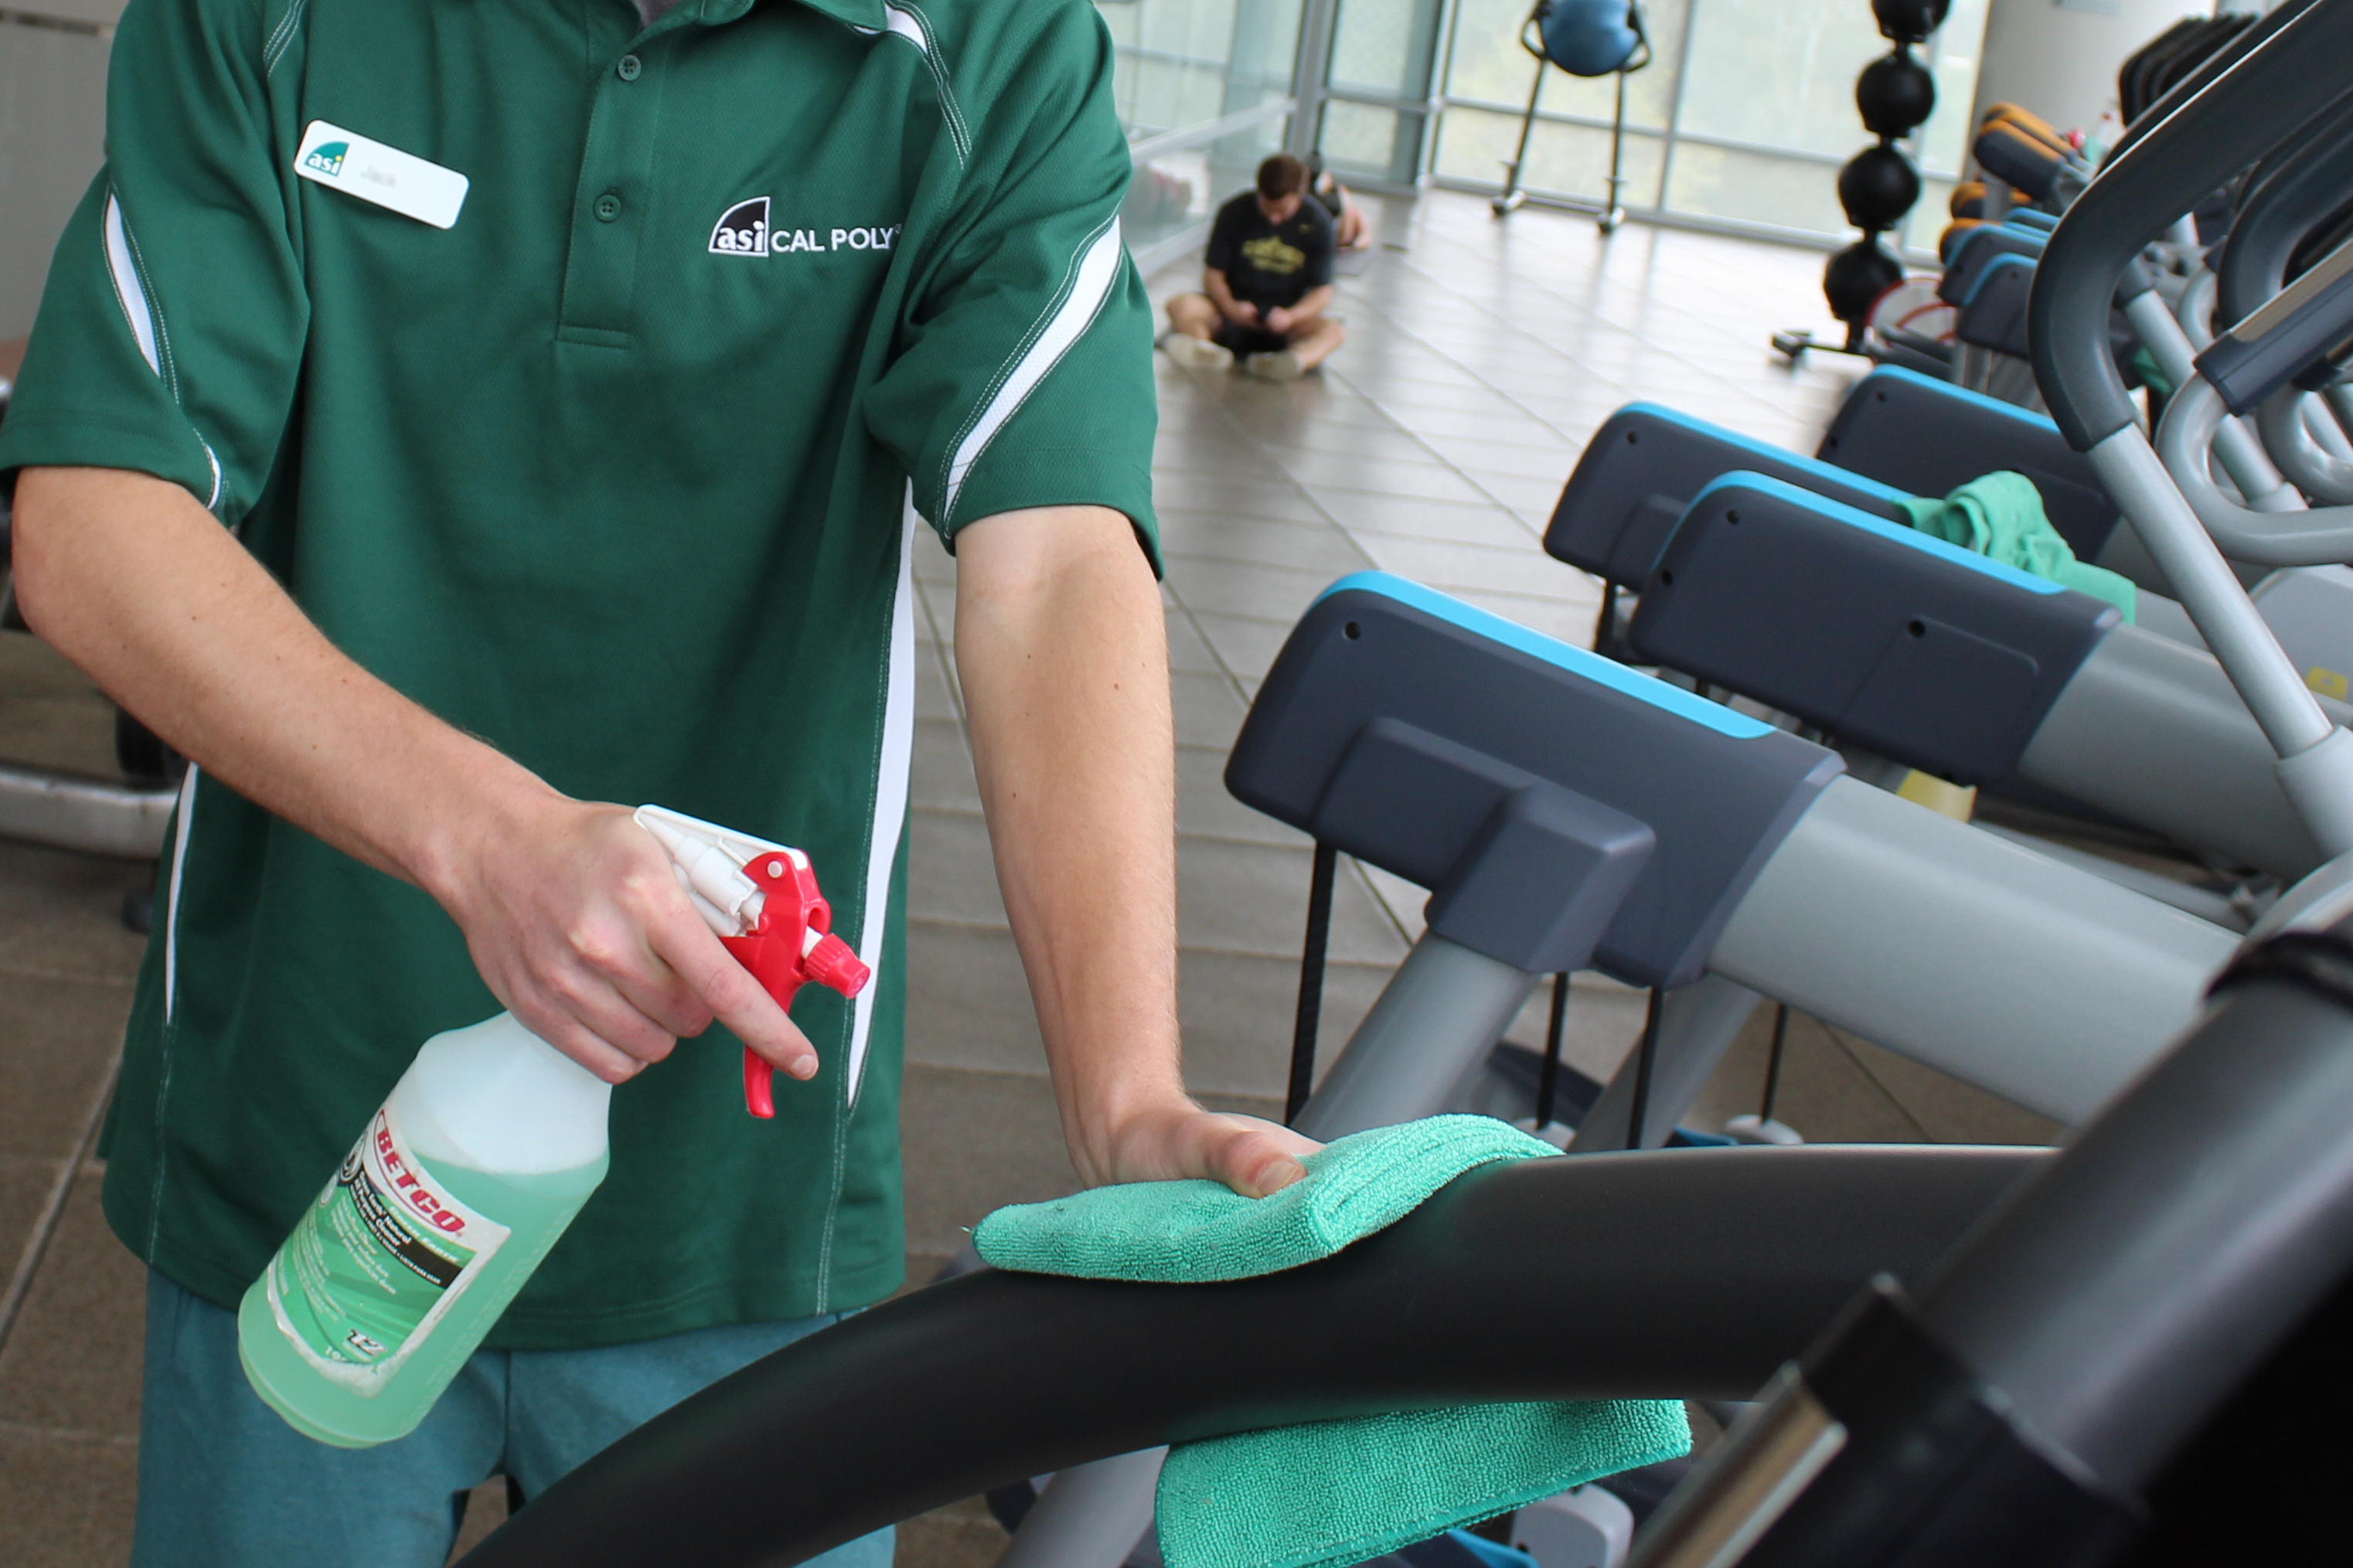 A staff member cleans a machine at the Recreation Center.